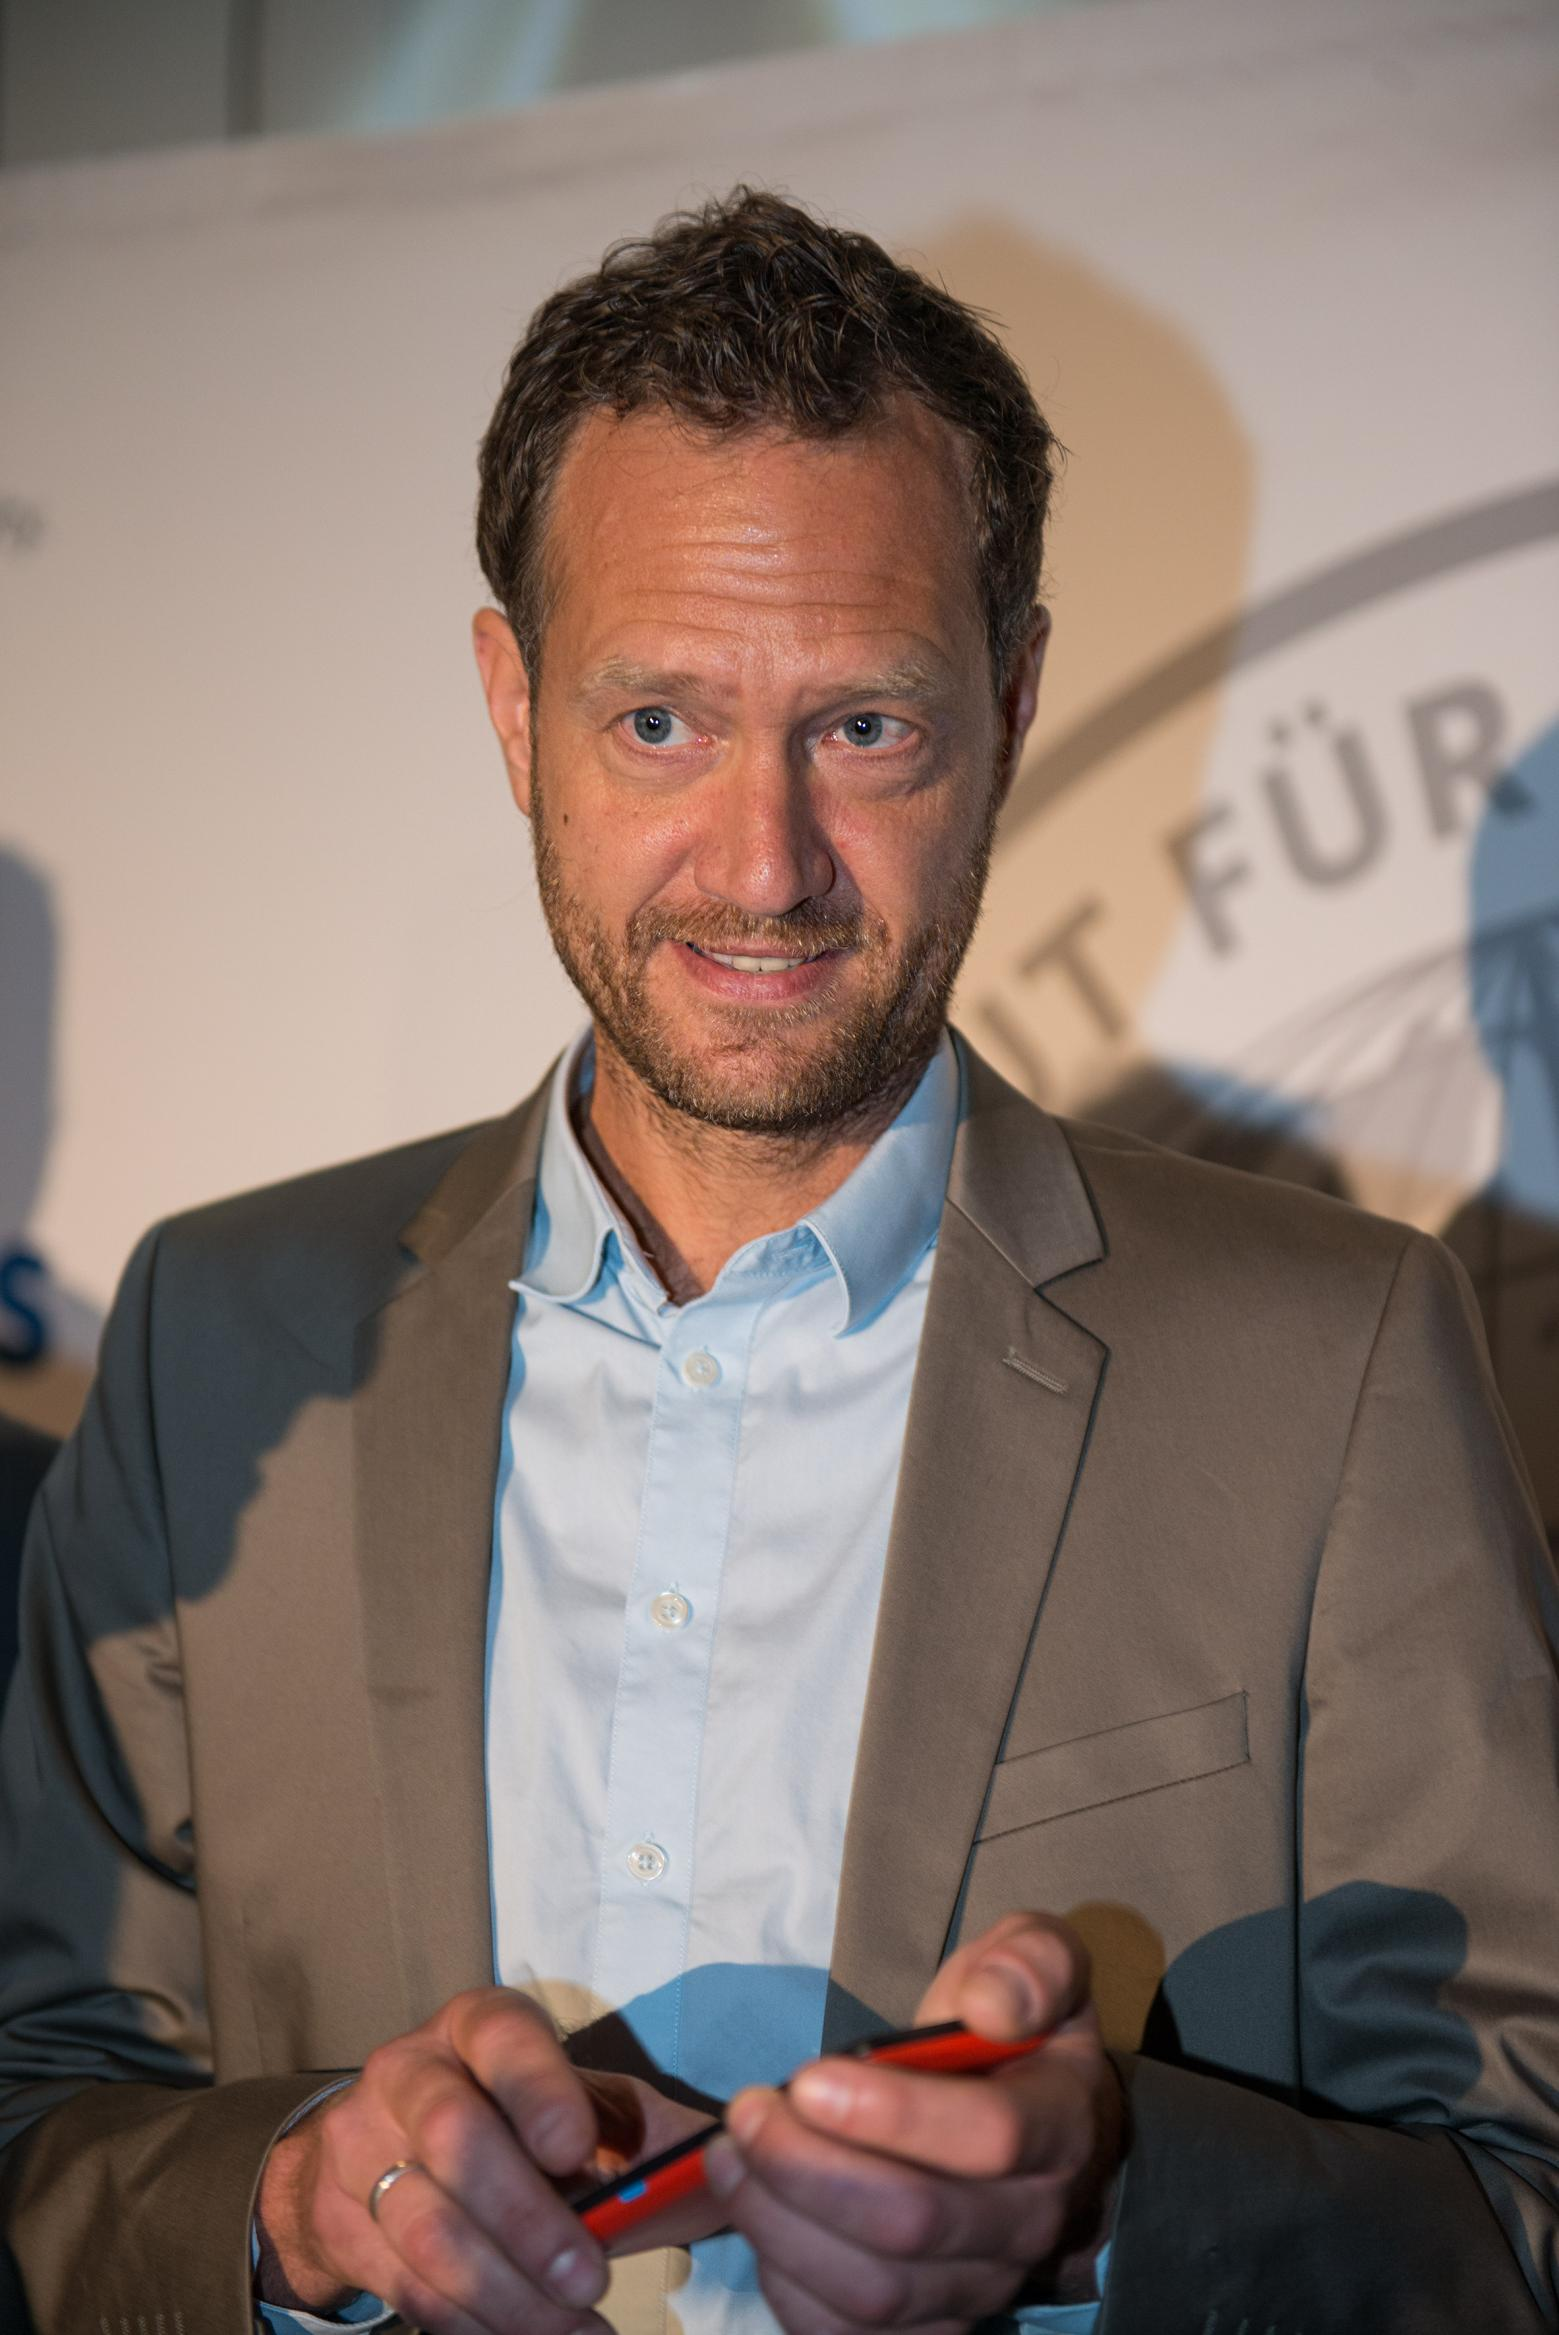 Bas van Abel CEO Fairphone at Kiel Prize